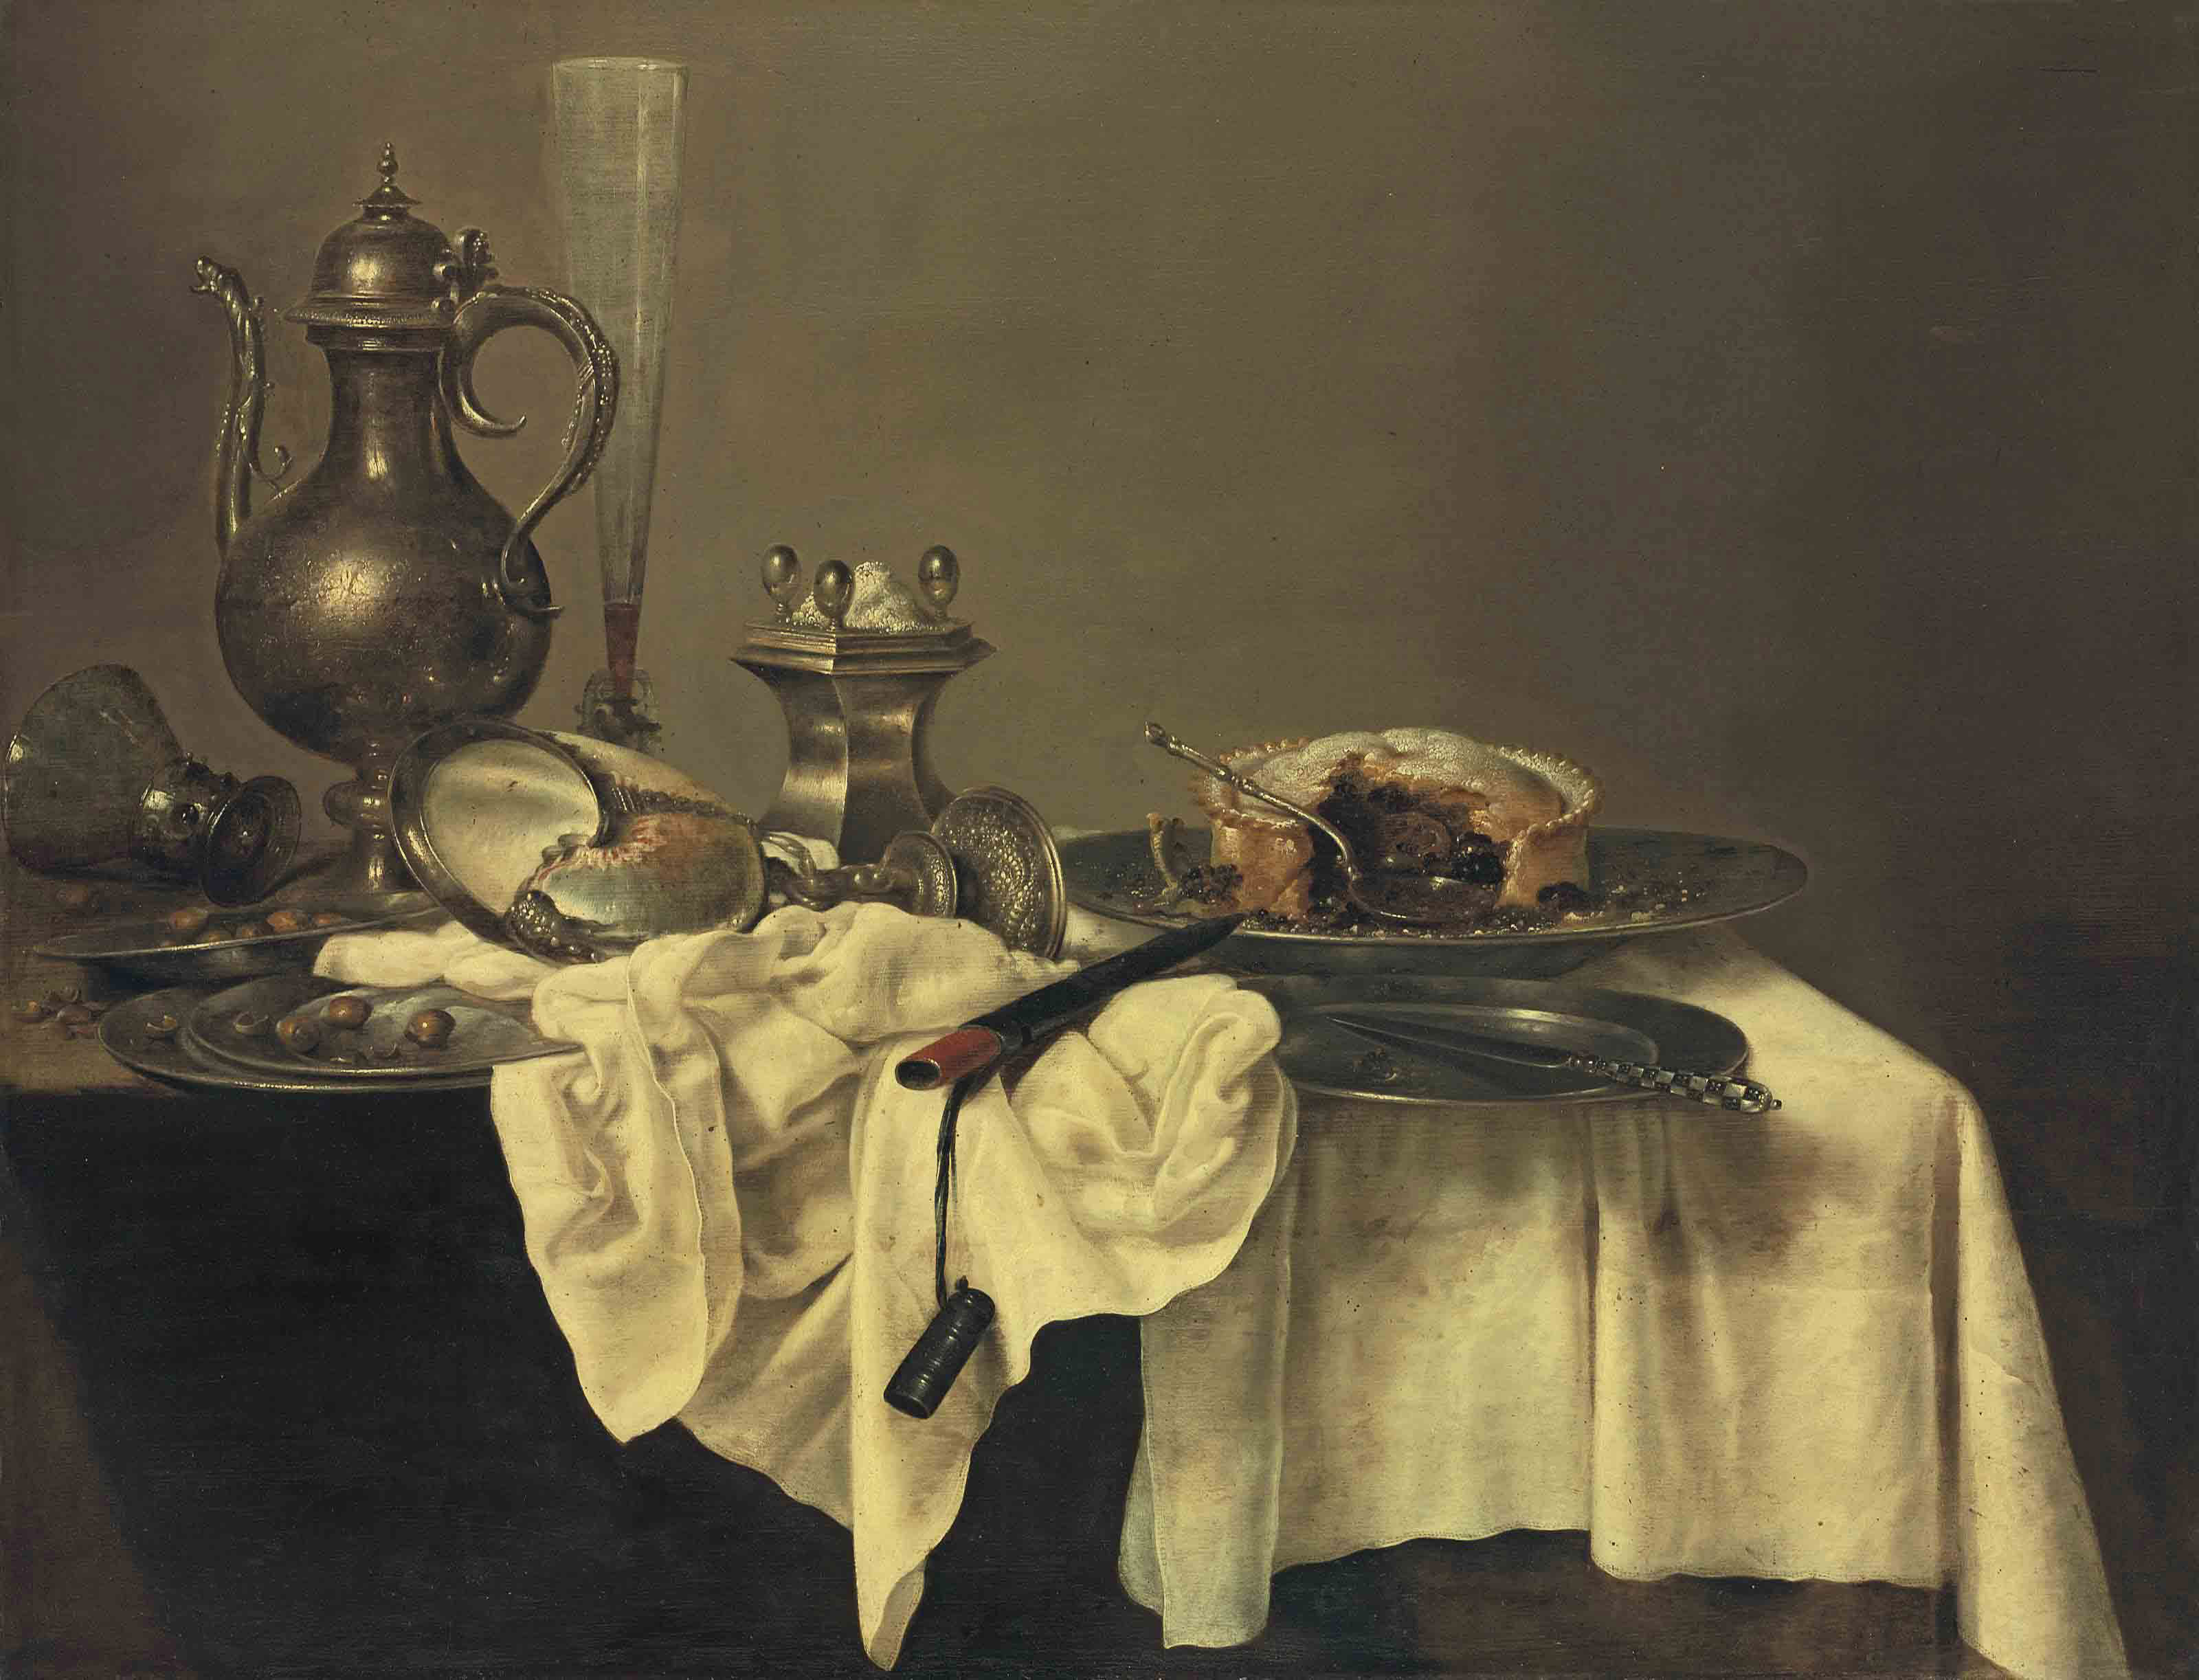 A blackberry pie, an upturned nautilus cup, a salt-cellar, a façon- de-Venise flute of wine, a silver ewer, an upturned roemer, hazelnuts, a silver knife and a knife-case, on a partly-draped table with pewter plates